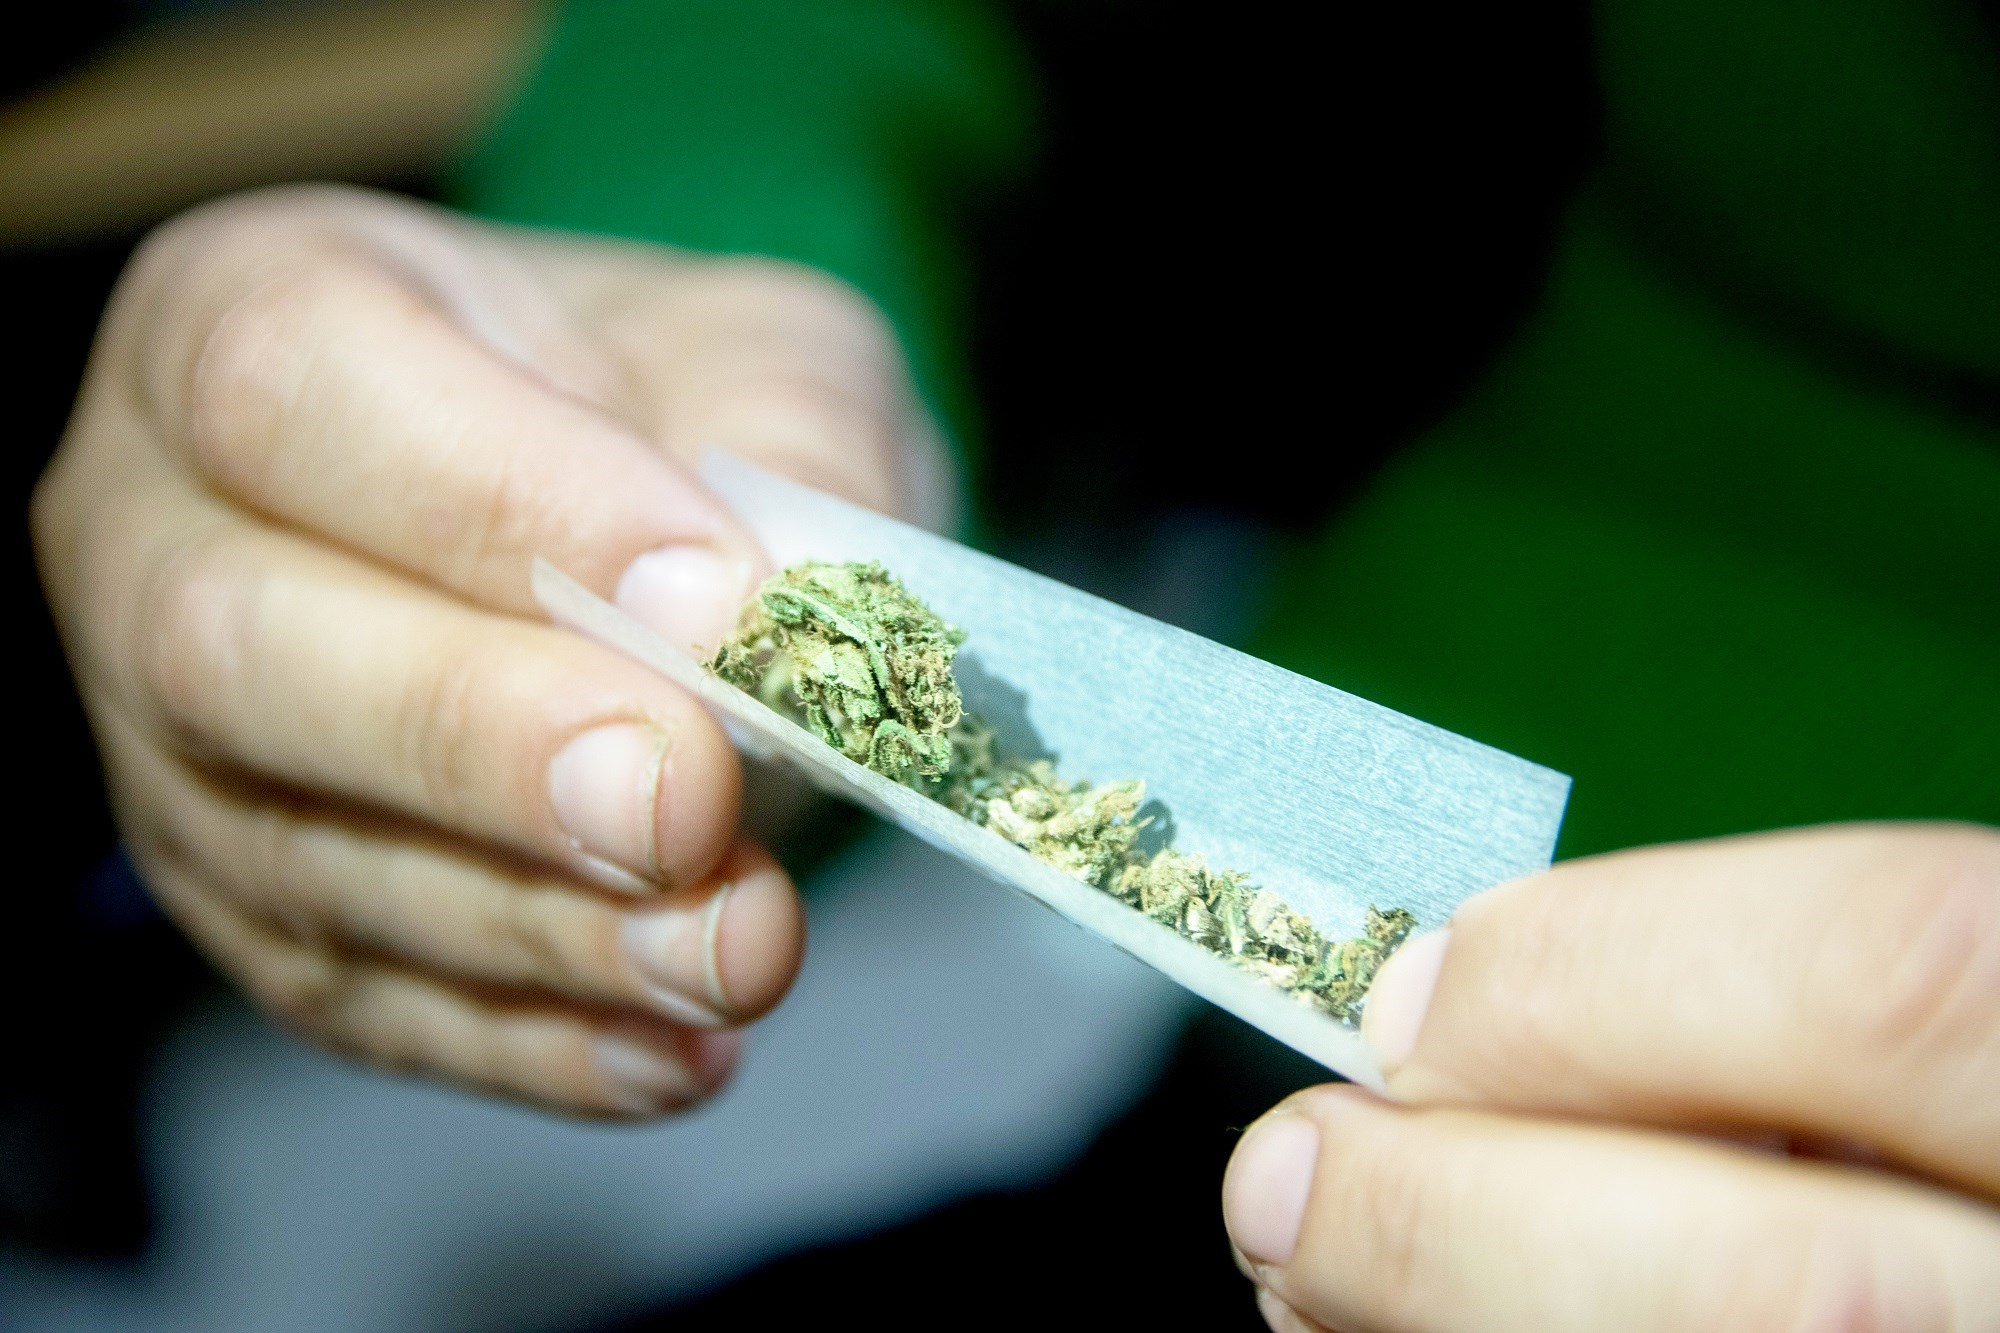 Prevalence of Marijuana Use Among US Adults in Past Year